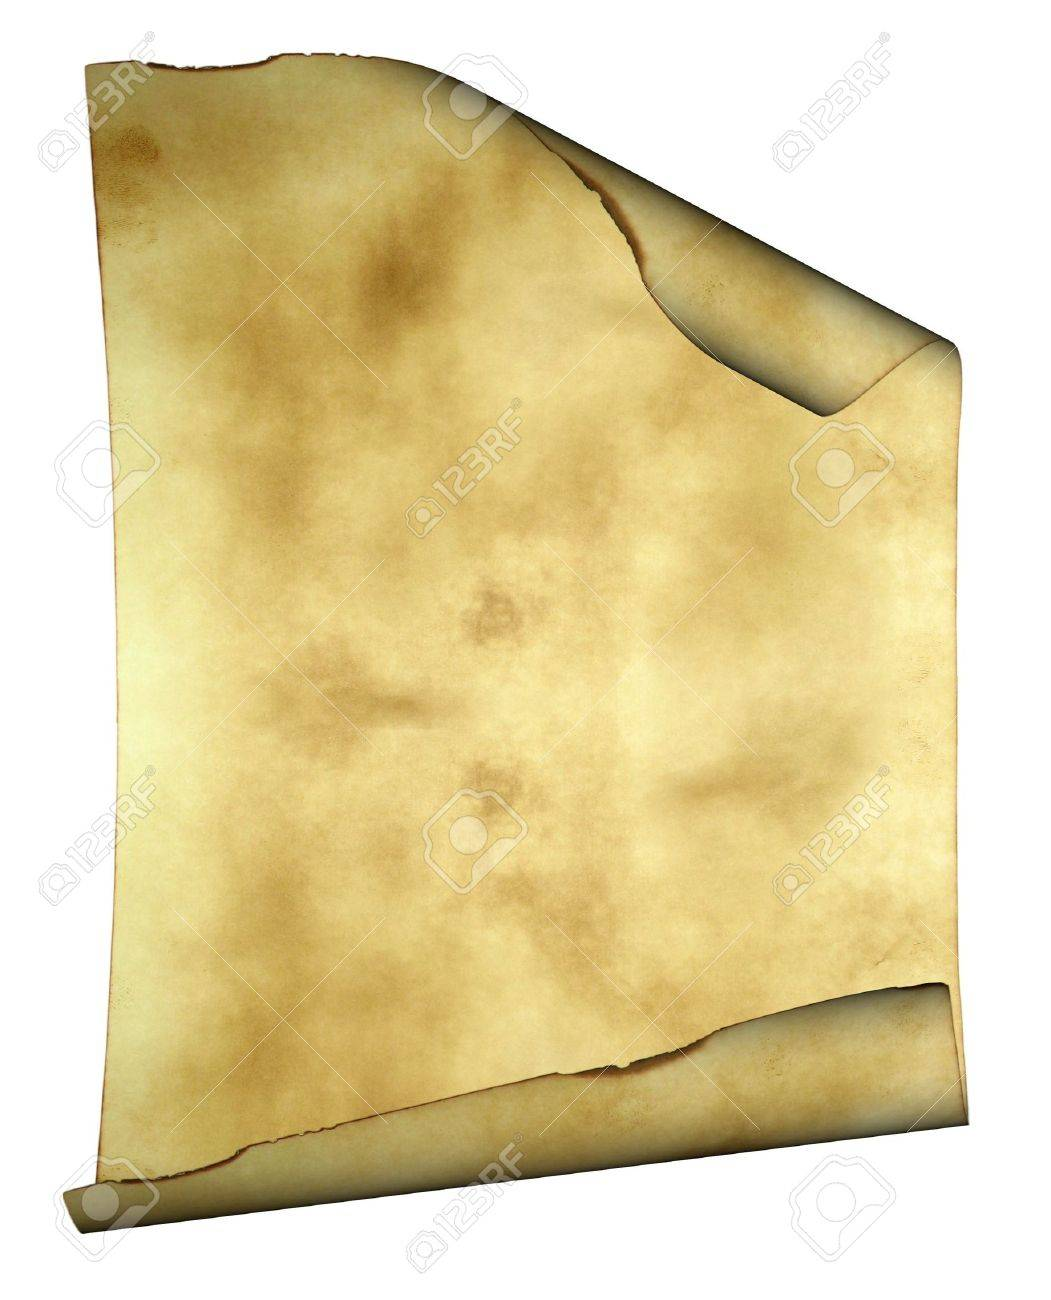 Old paper background parchment with curled burned edges and space for text or image Stock Photo - 3450580